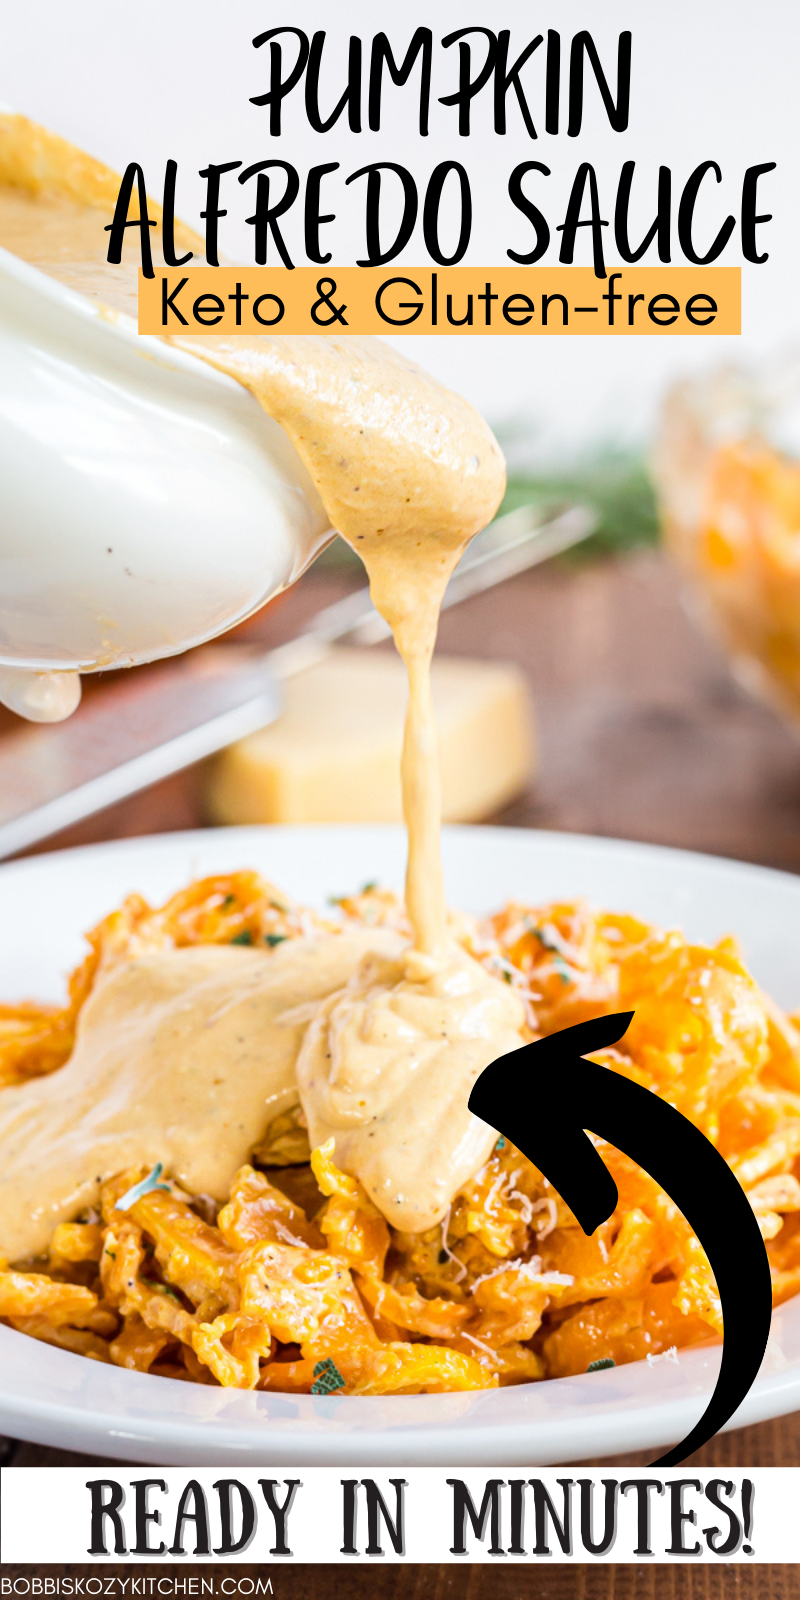 Pumpkin Alfredo Sauce - This Pumpkin Alfredo Sauce is an easy weeknight dish with a few ingredients, is done in less than 20 minutes, plus it is low carb and gluten-free! #pumpkin #lowcarb #alfredo #sauce #keto #glutenfree #recipe